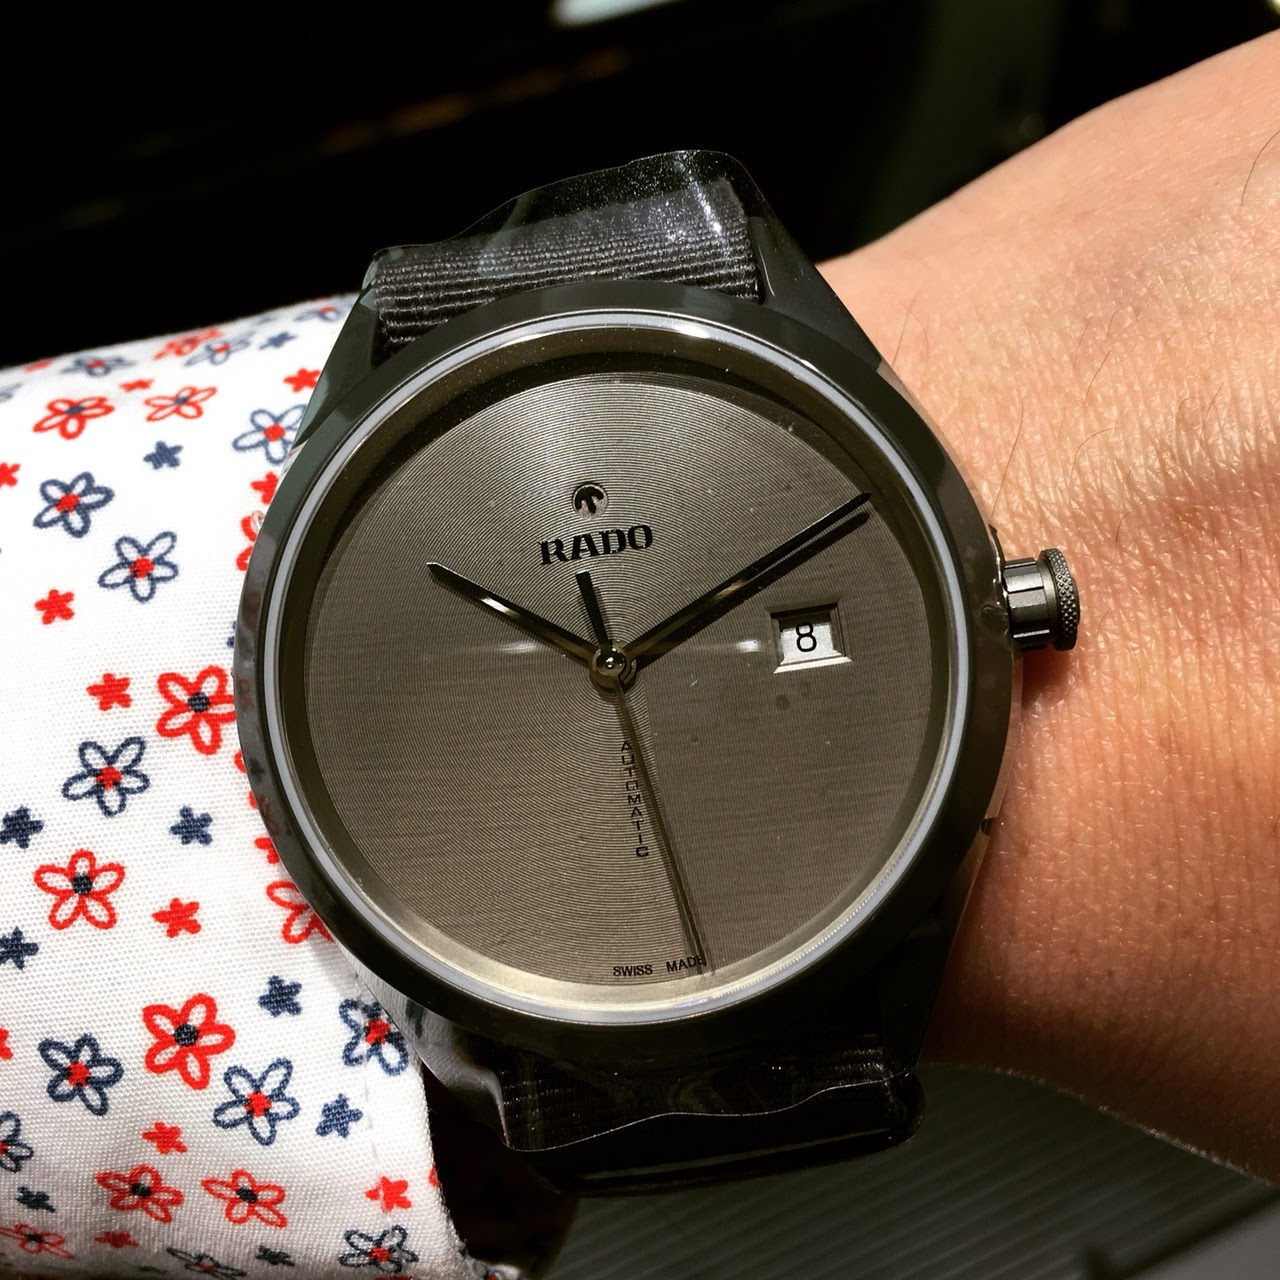 217b180b32c0 Horological Meandering - Saw something interesting and cool...